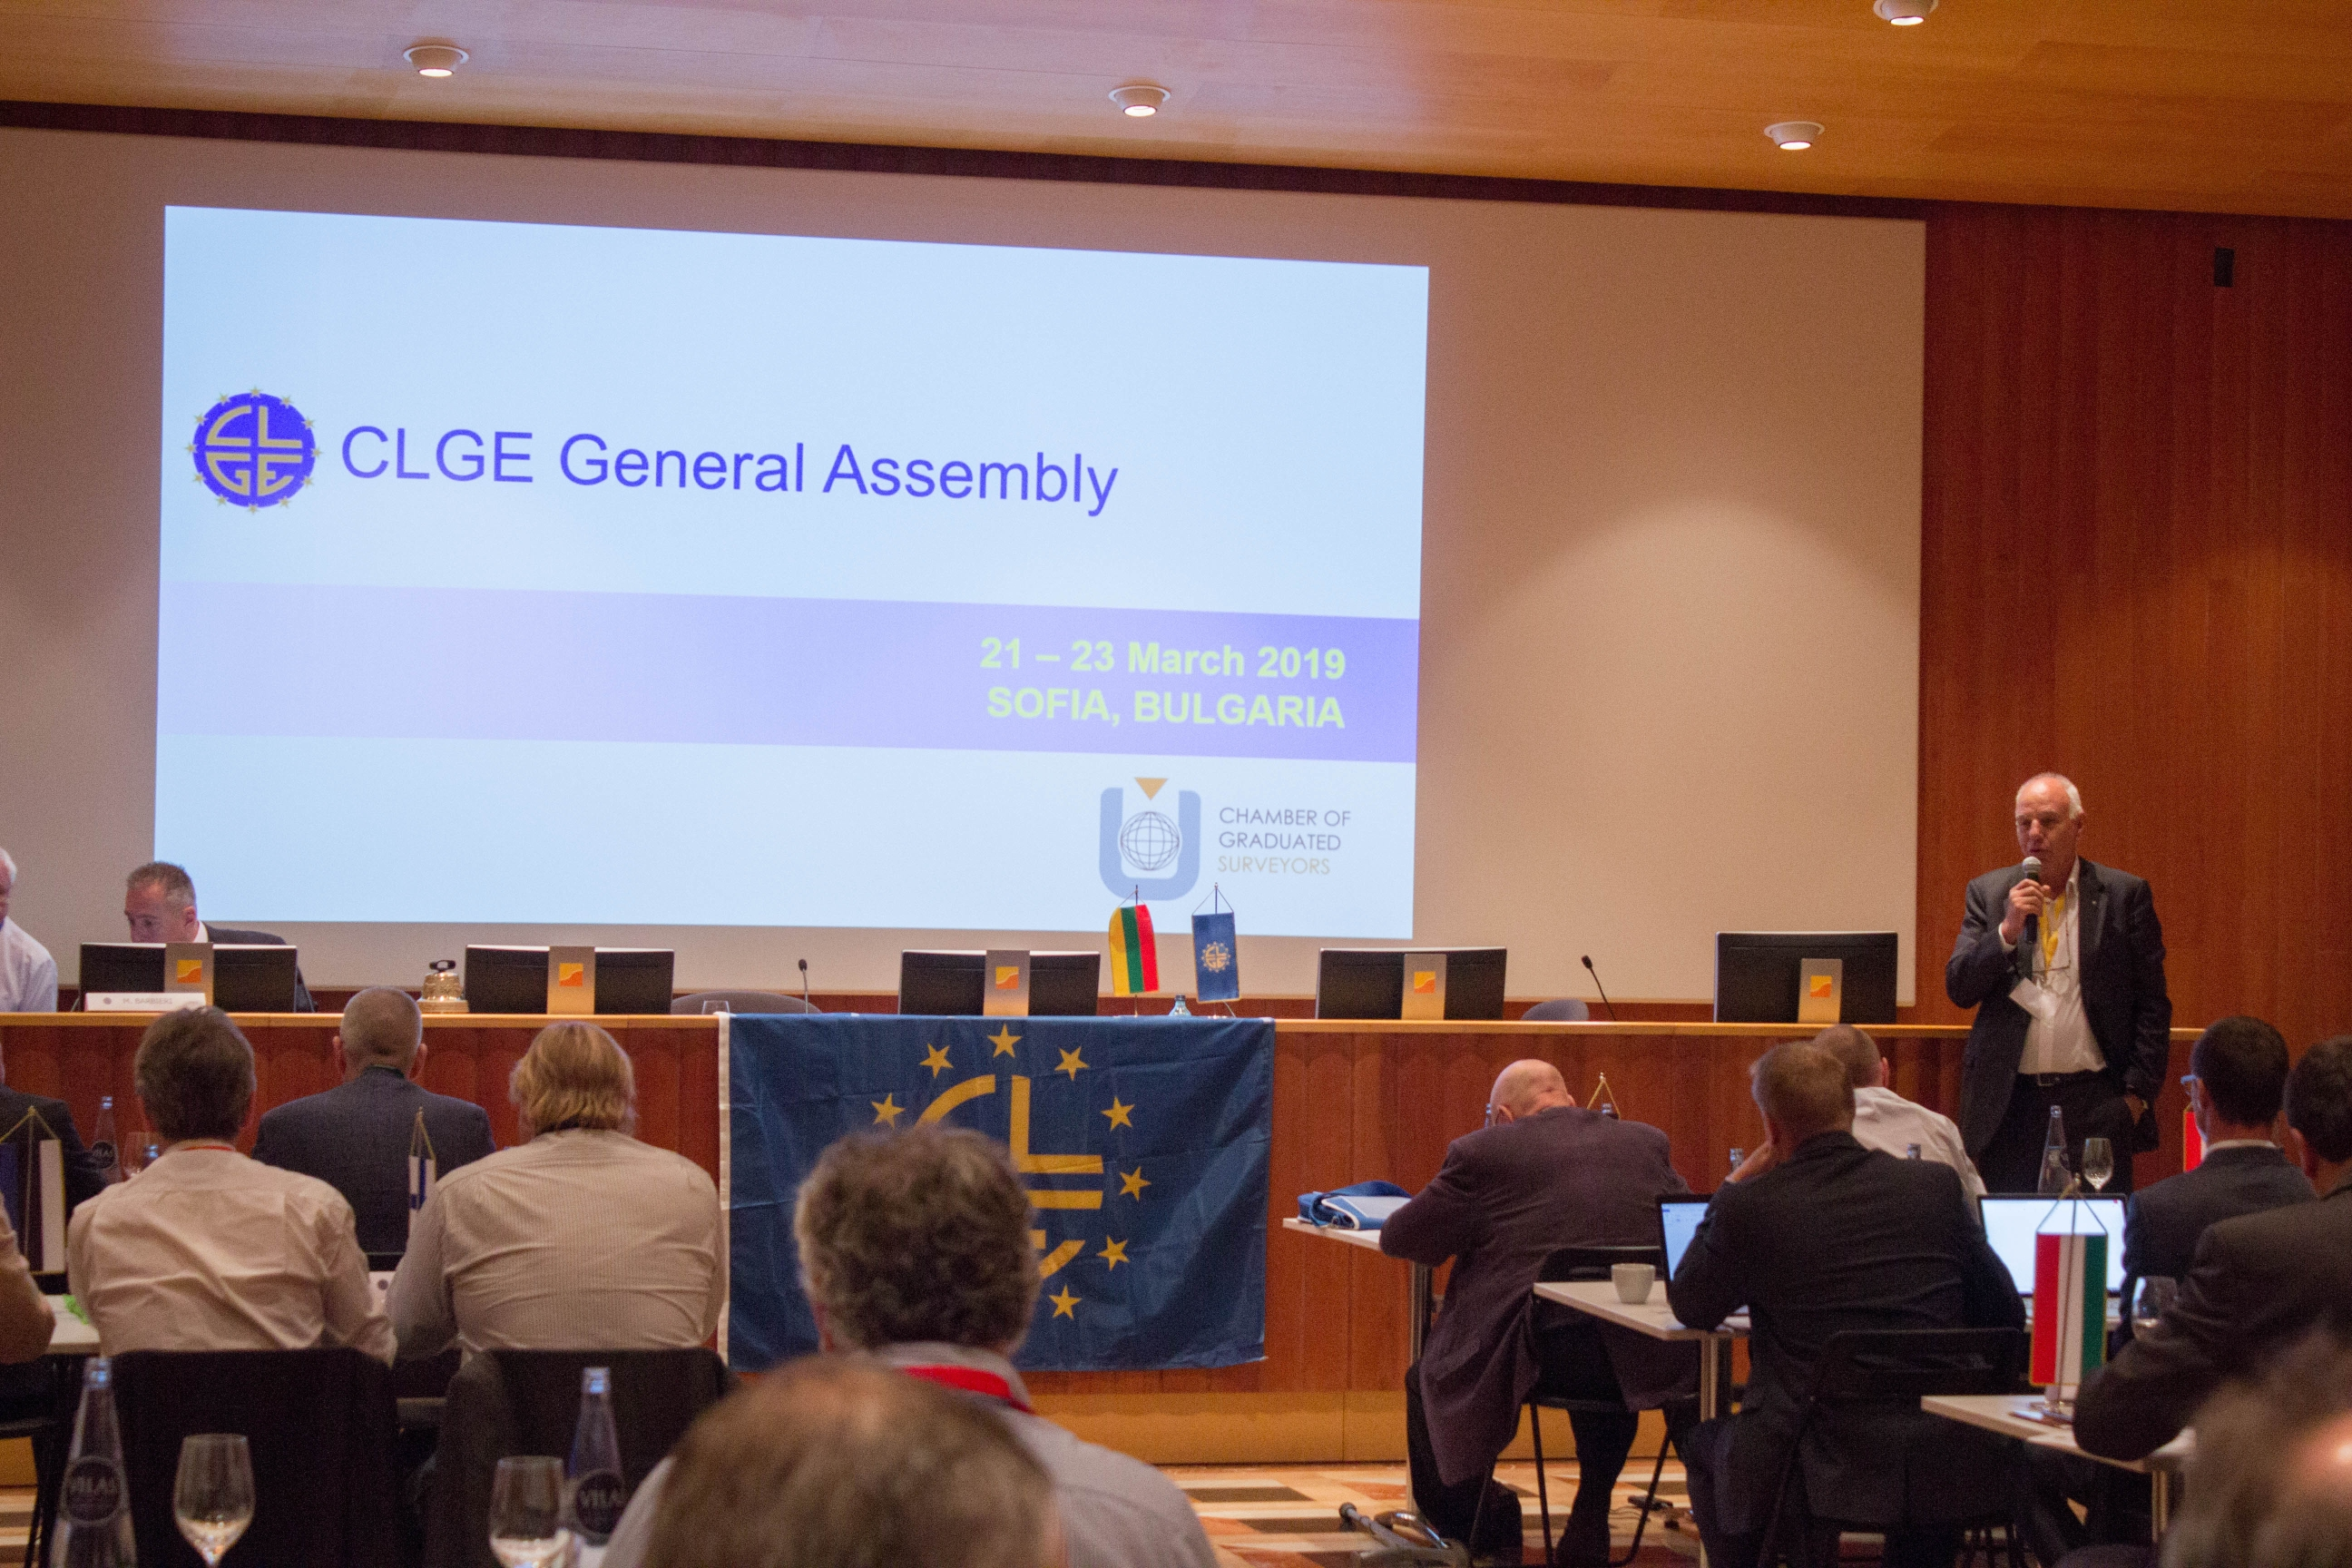 clge-general-assembly-barcelona-2018_44517979904_o.jpg